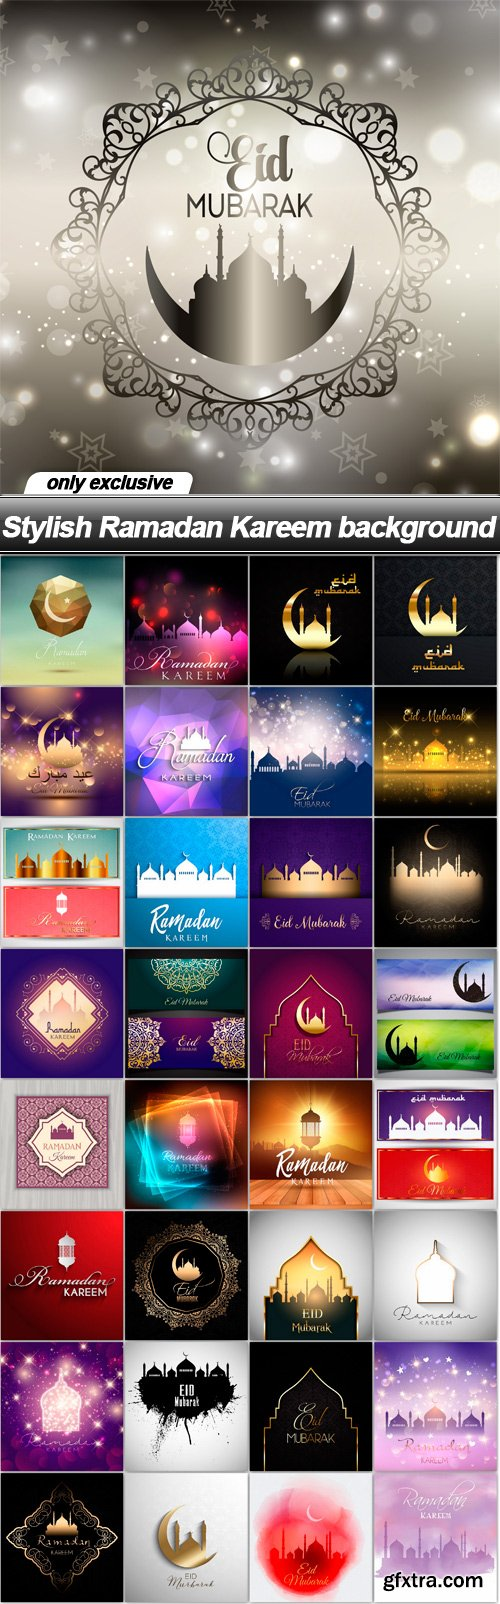 Stylish Ramadan Kareem background - 33 EPS